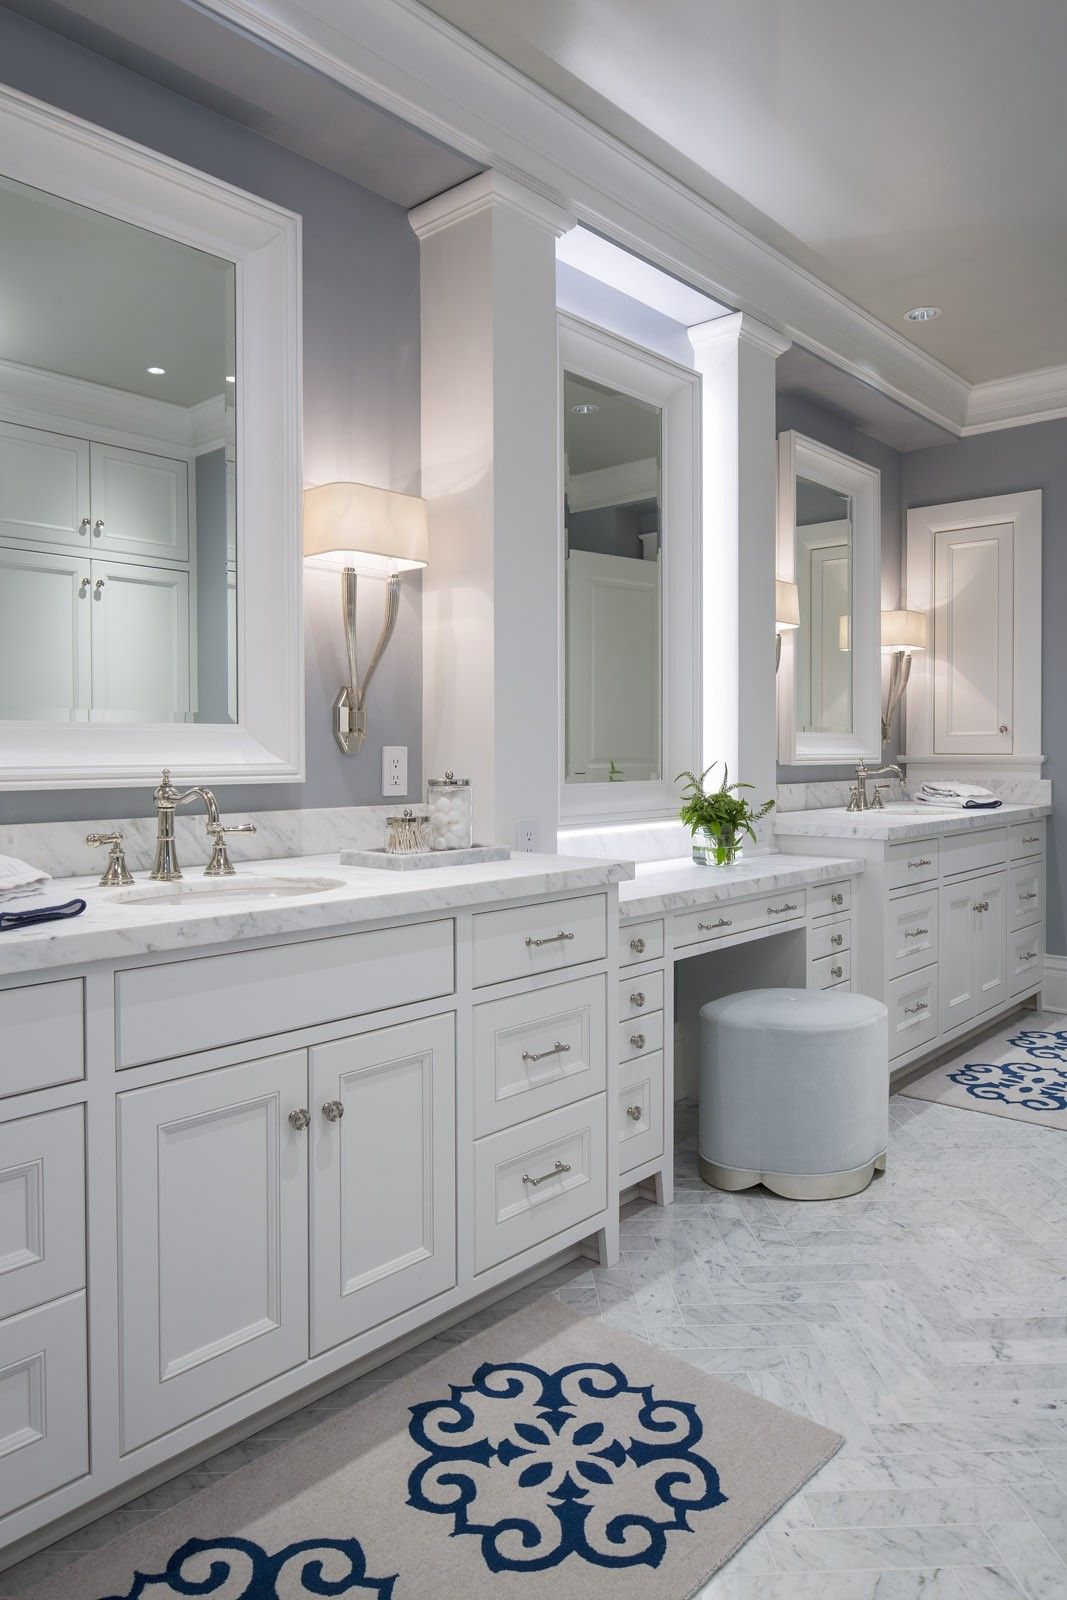 His And Hers Bathroom Organization Double Sinks